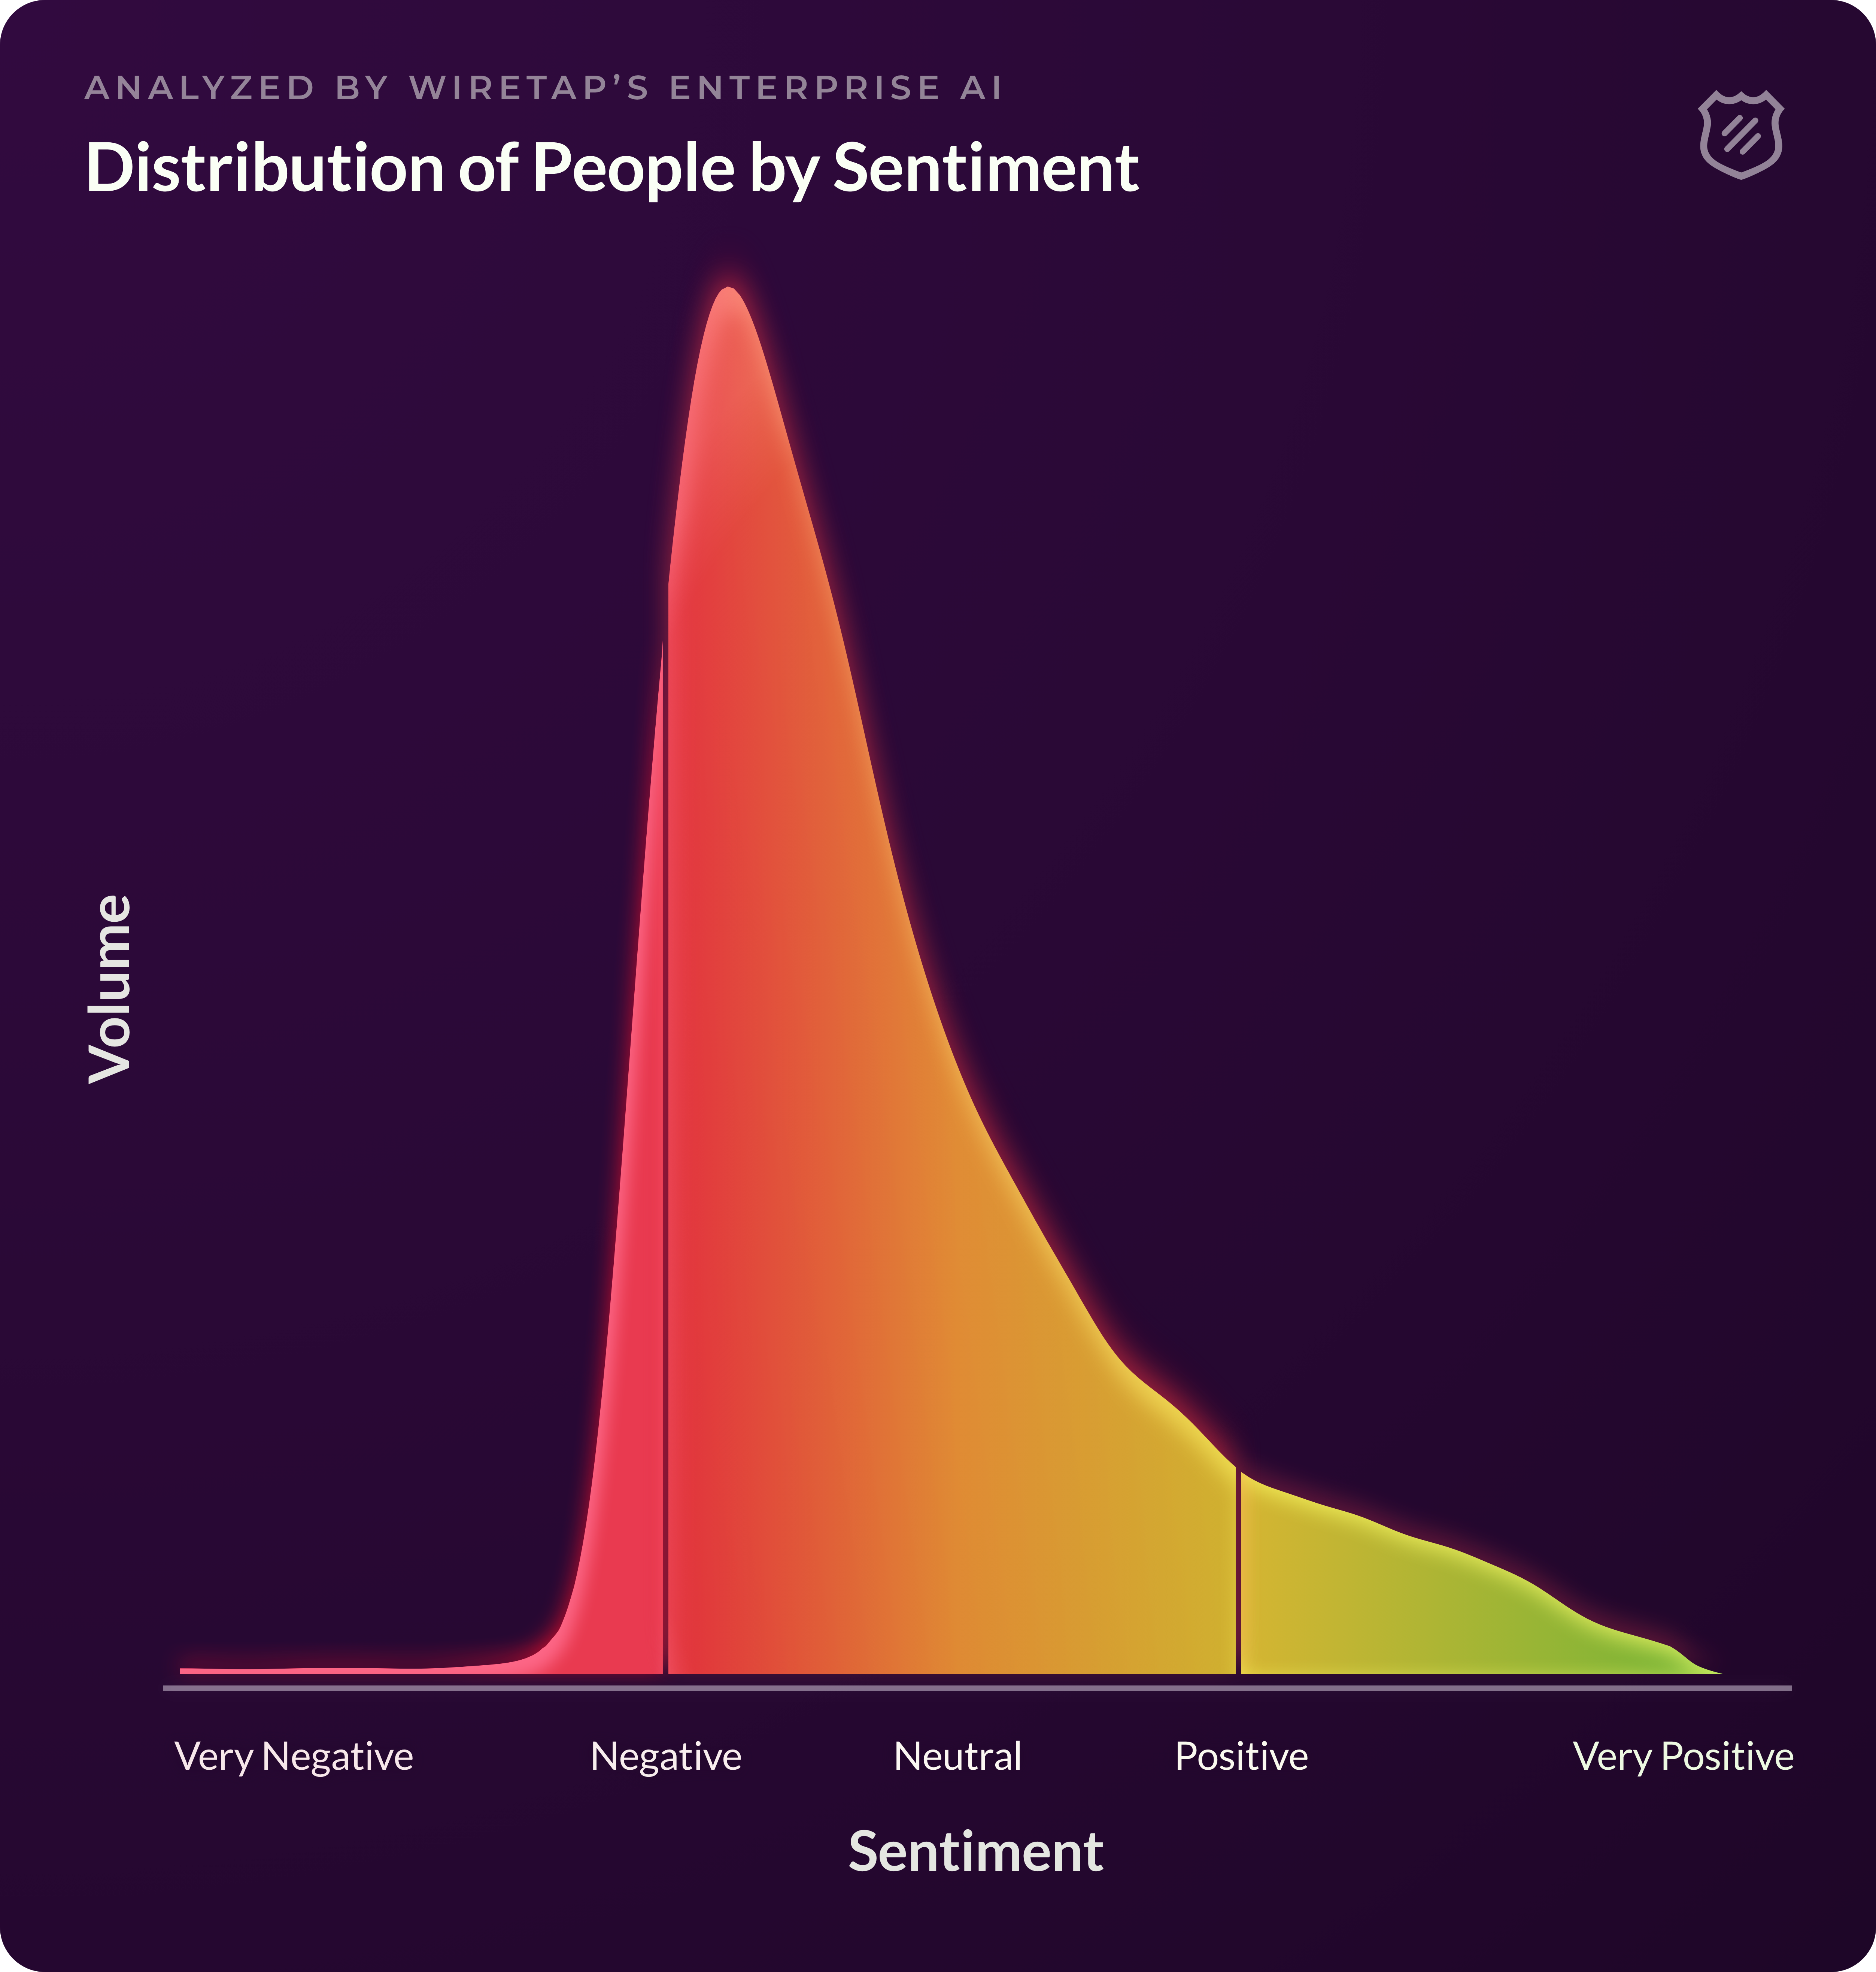 distribution_of_people_by_sentiment.png